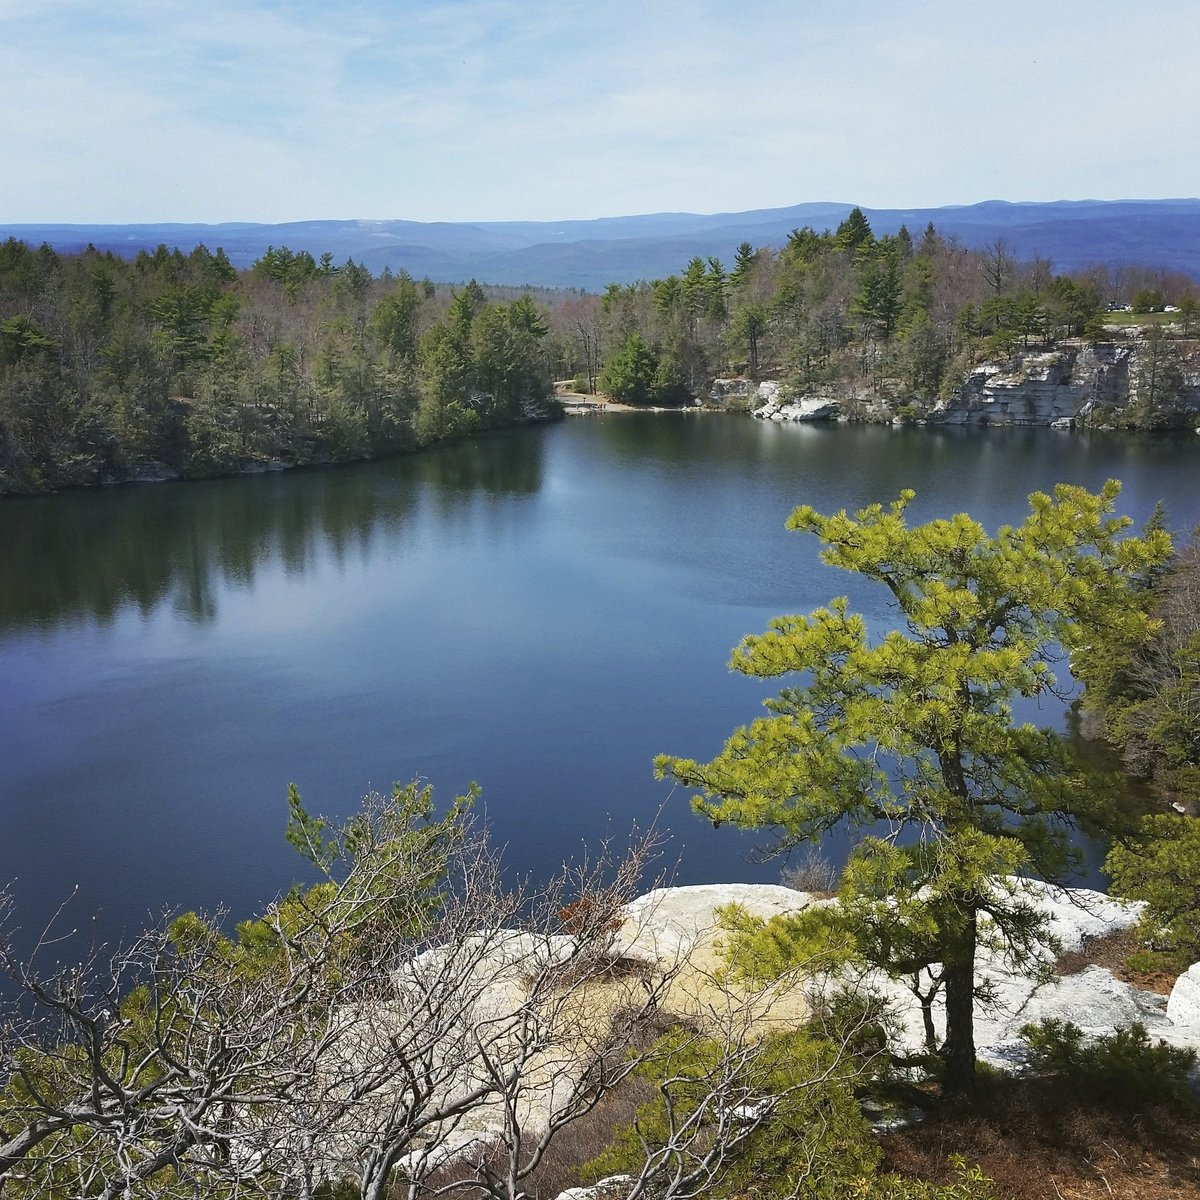 Happy #EarthDay! Celebrate by visiting your @NYstateparks  https://t.co/Dou3alO0Sb photo: #Minnewaska State Park https://t.co/aIqUC5x9Eg